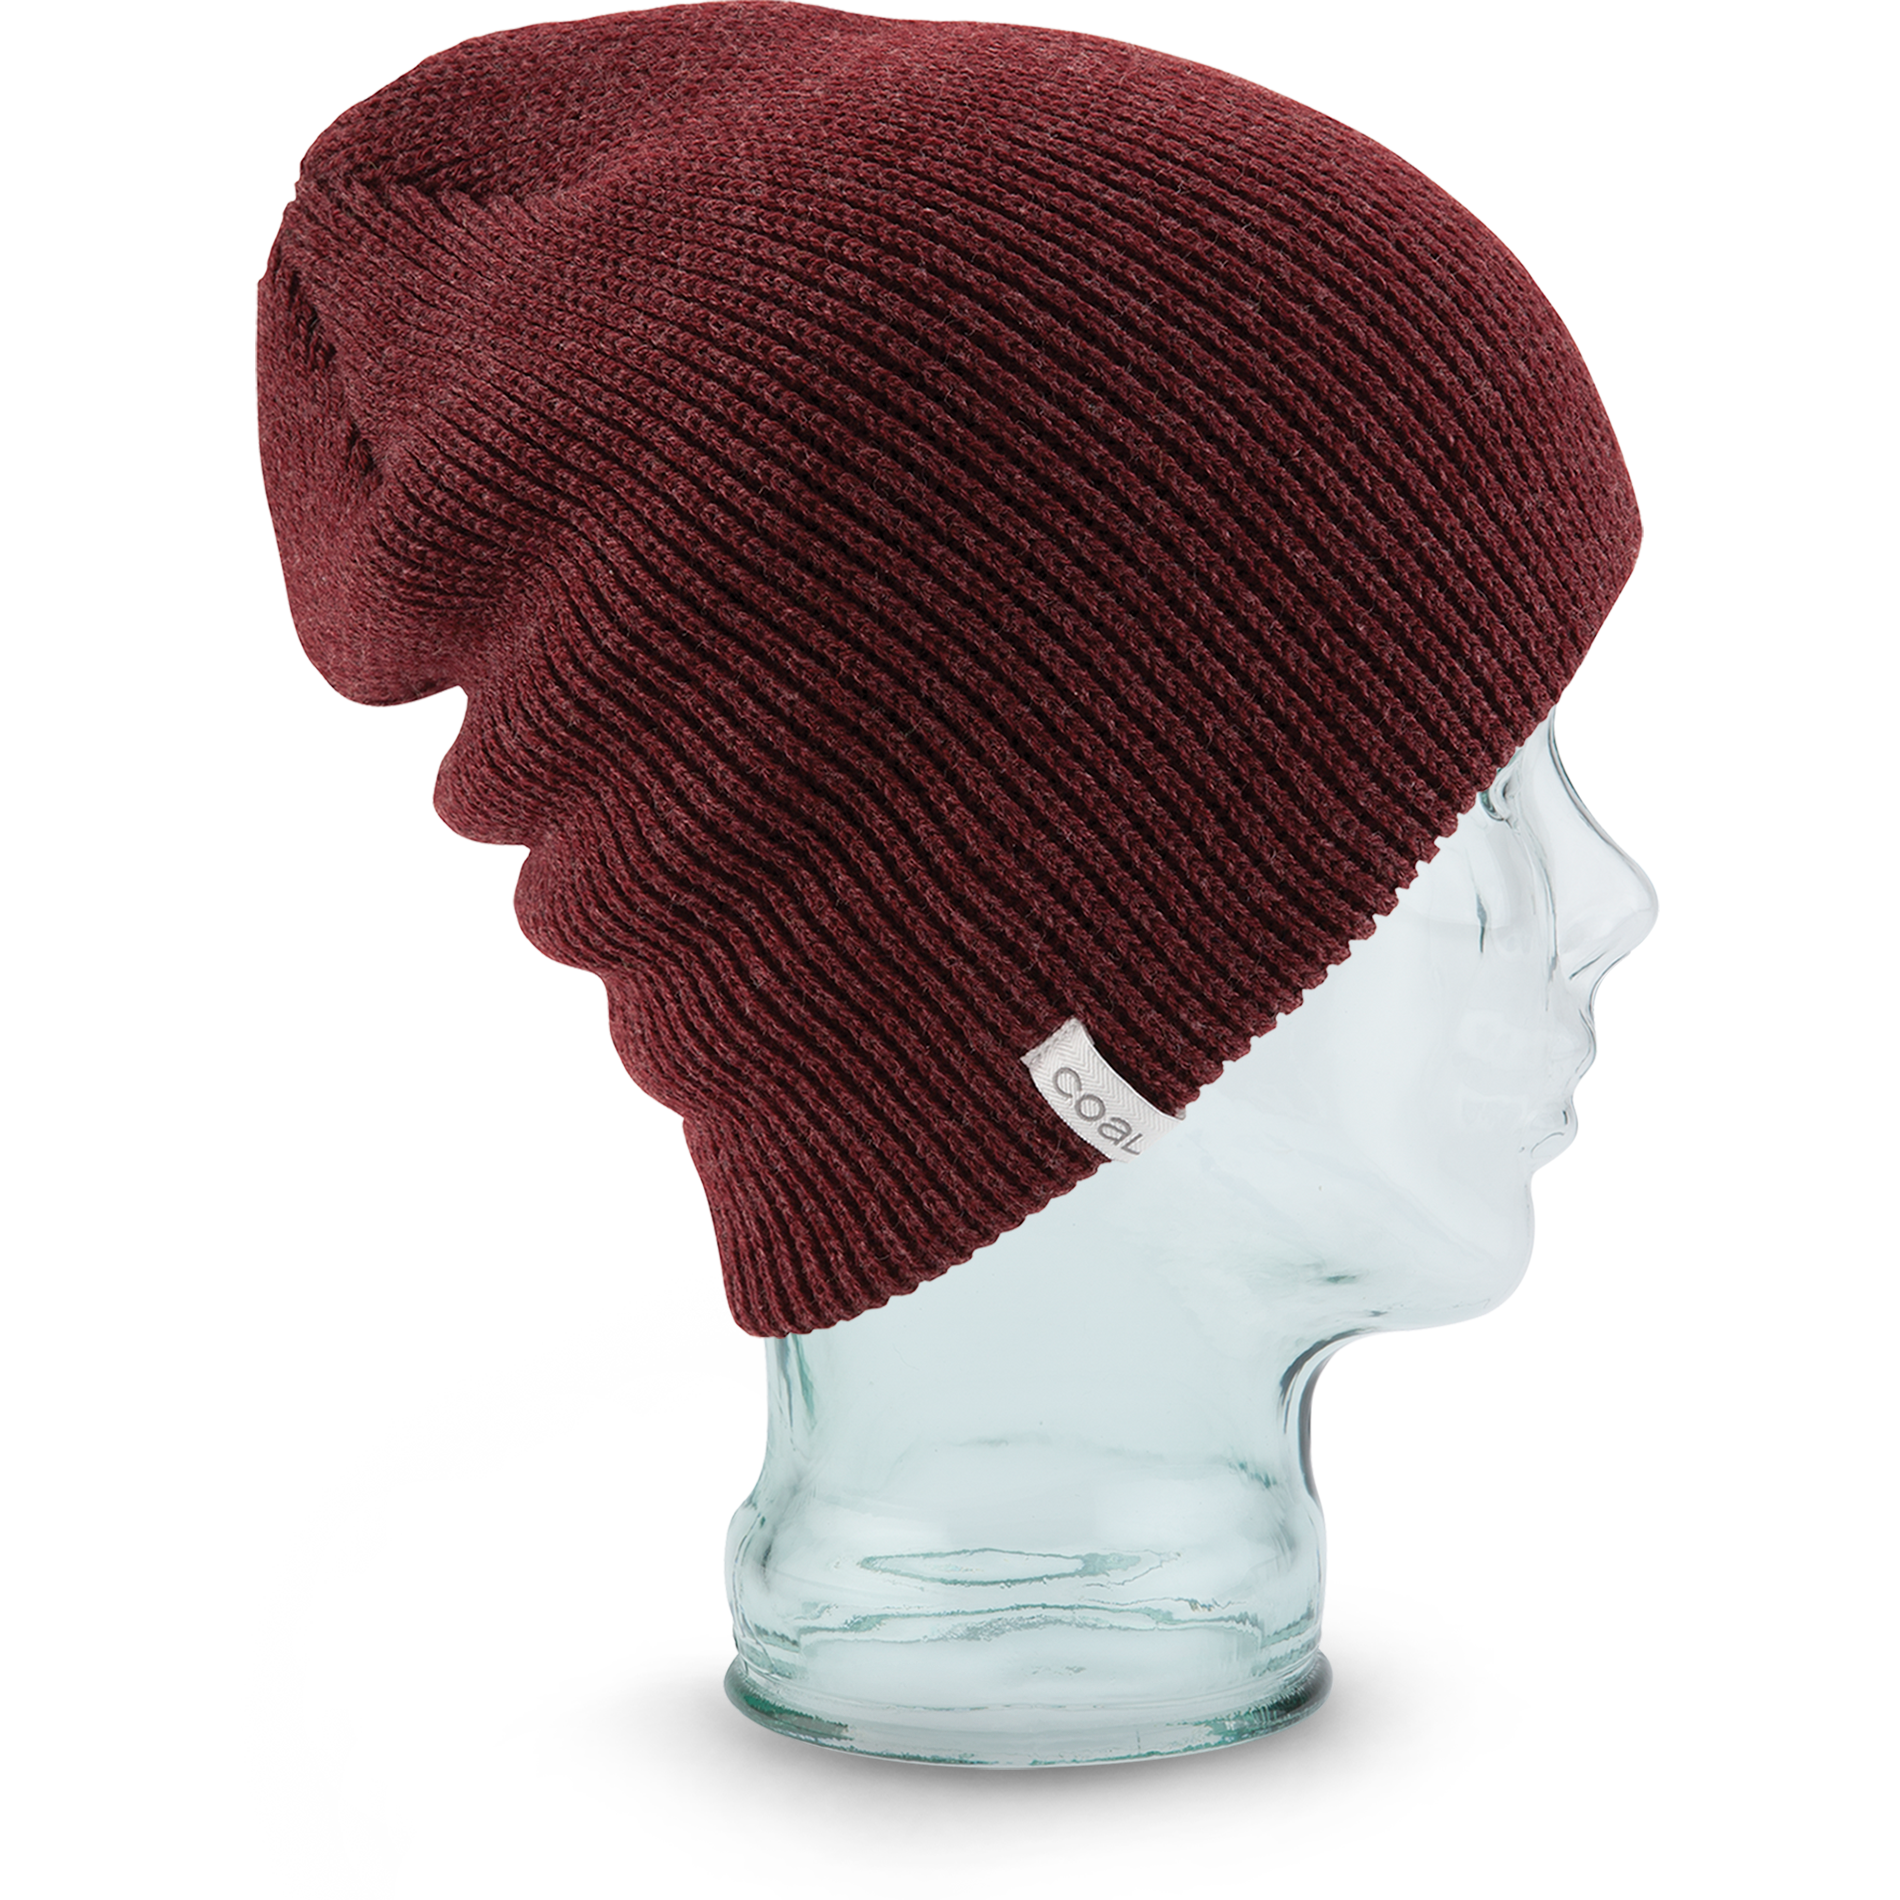 Coal Frena Solid Beanie - 88 Gear